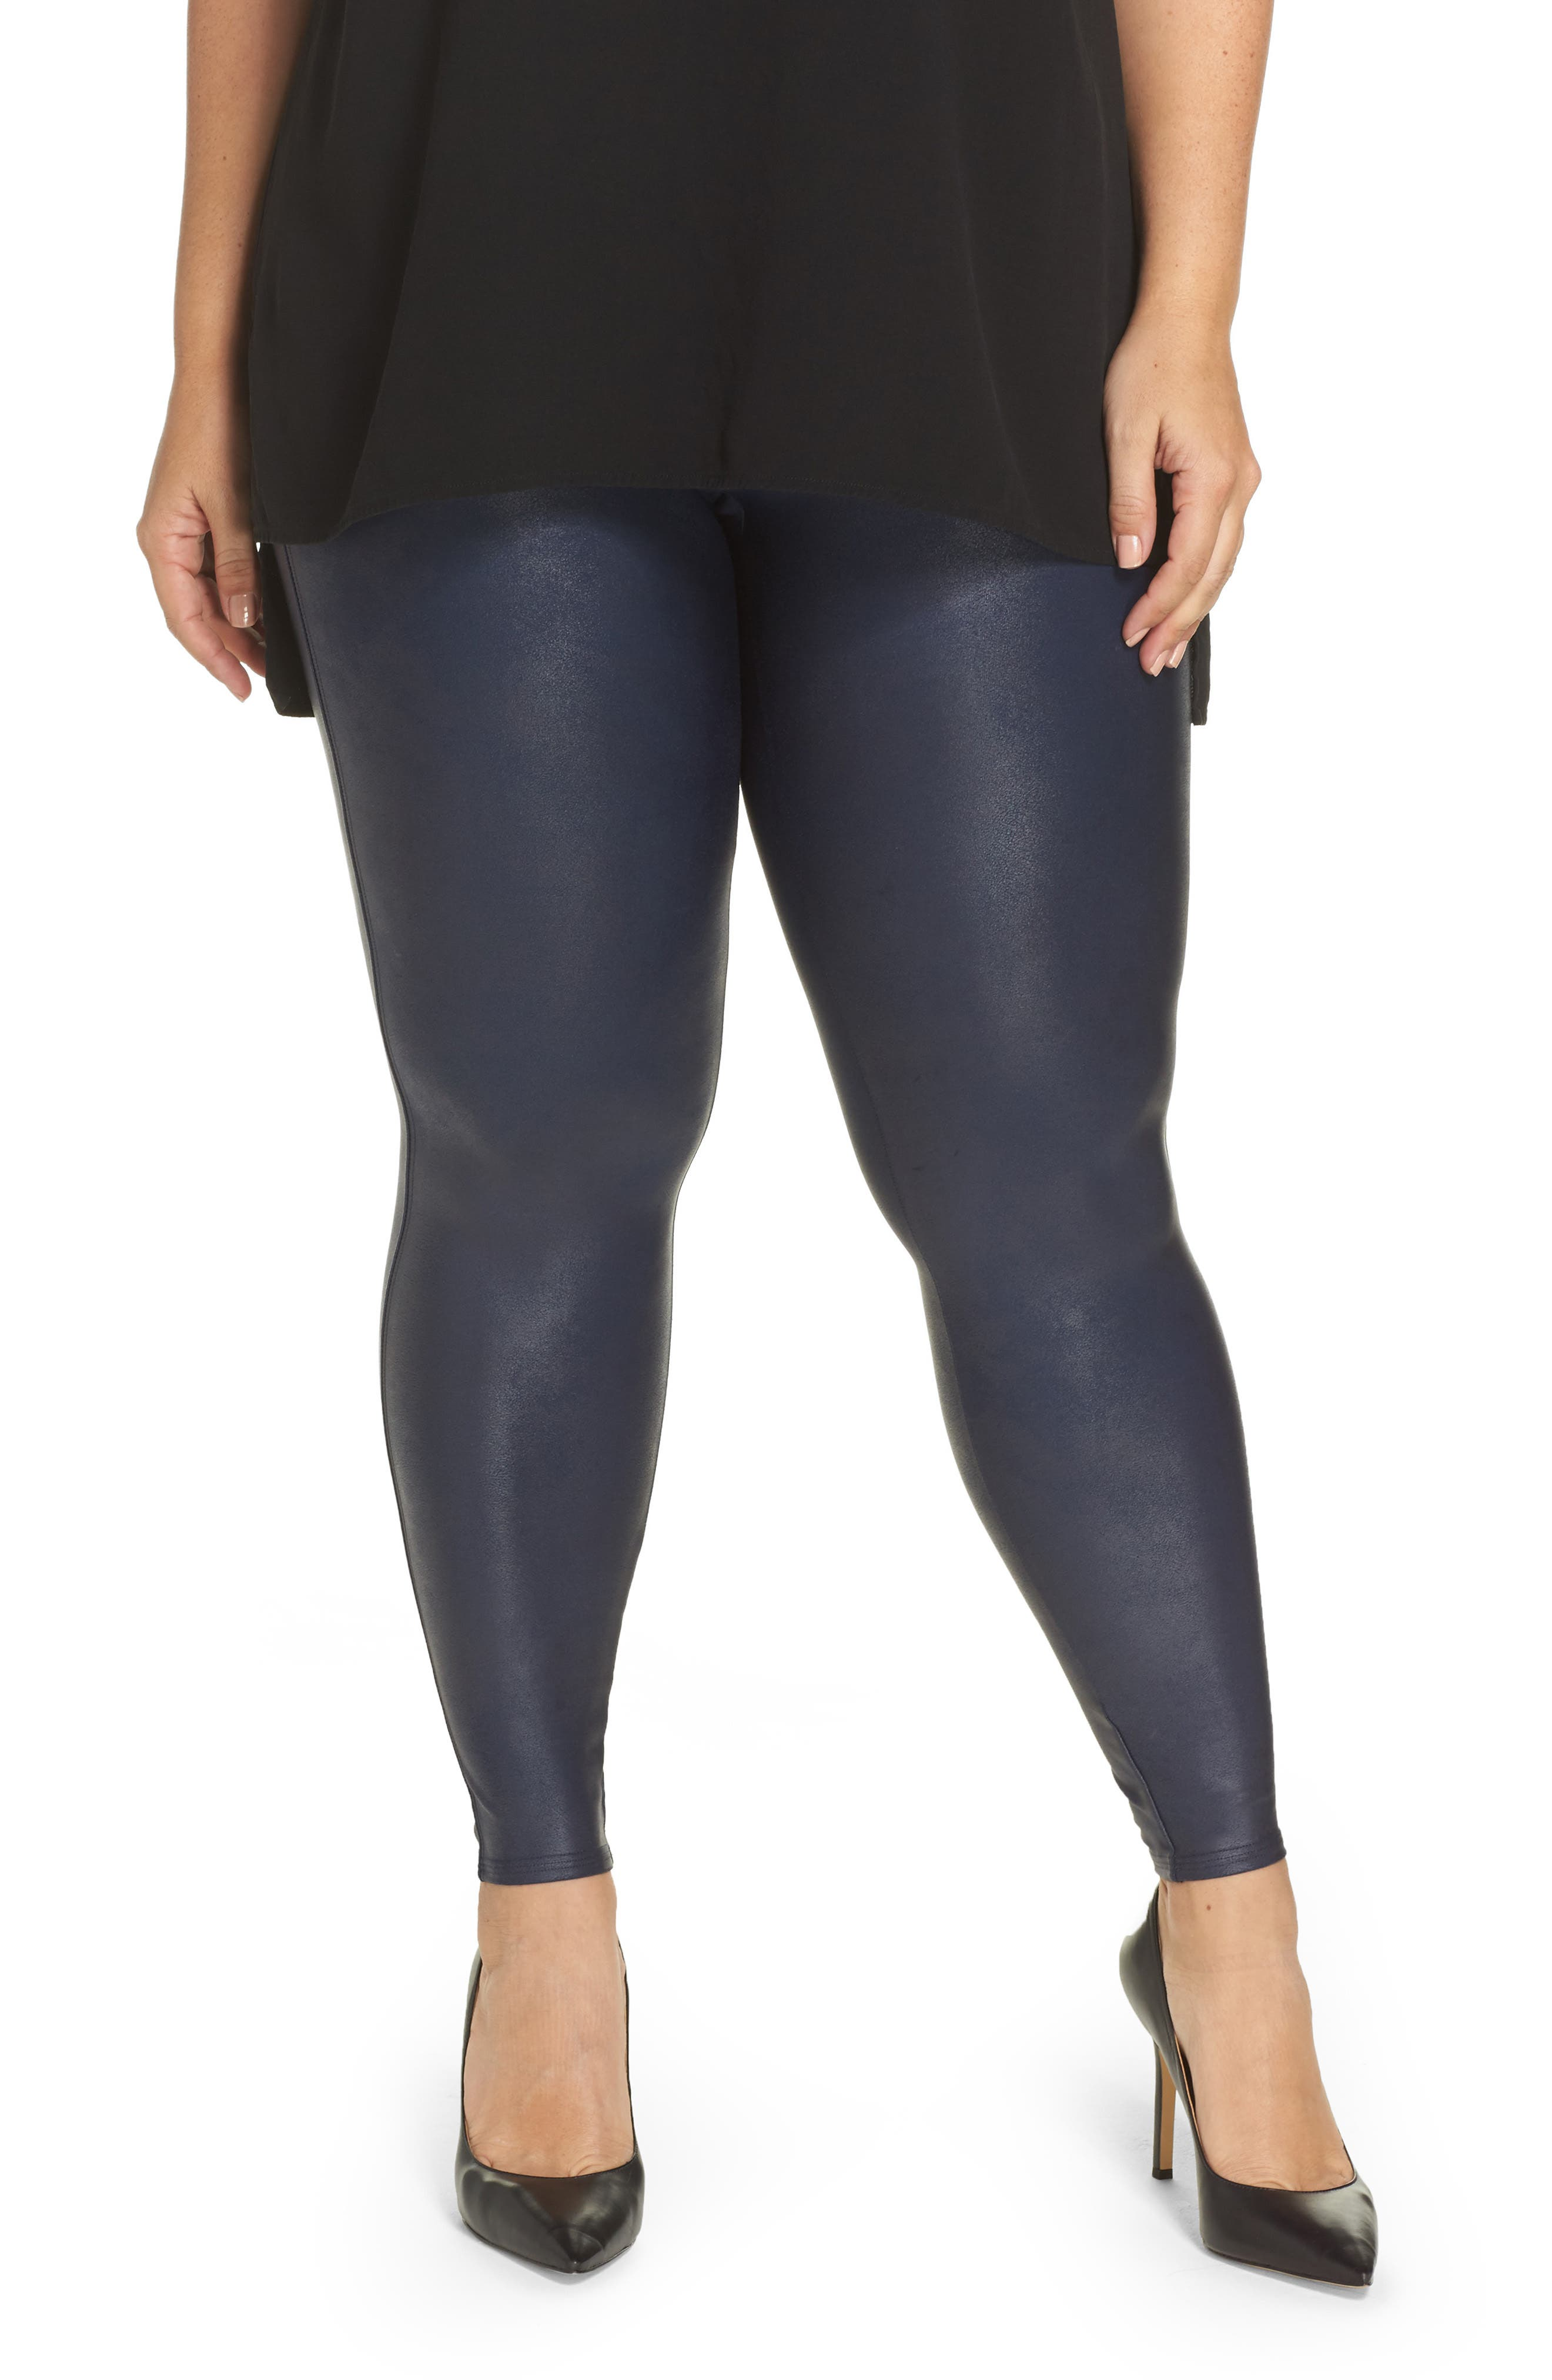 Alternate Image 1 Selected - SPANX® Faux Leather Leggings (Plus Size)